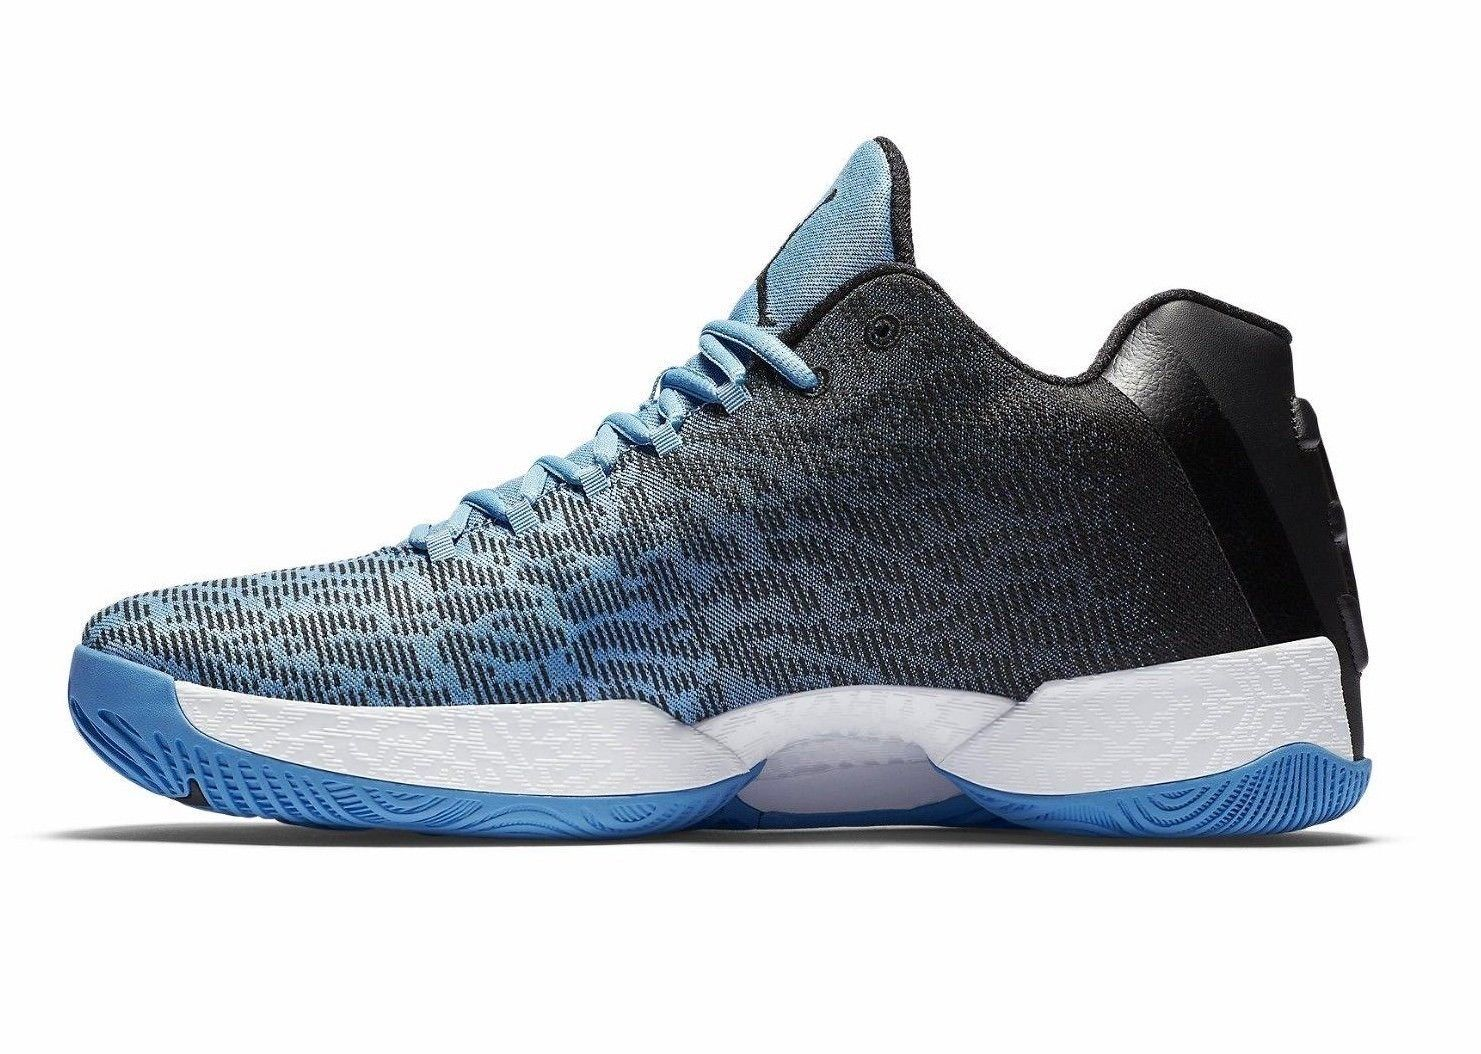 1ae4559597f NIKE AIR JORDAN XX9 LOW